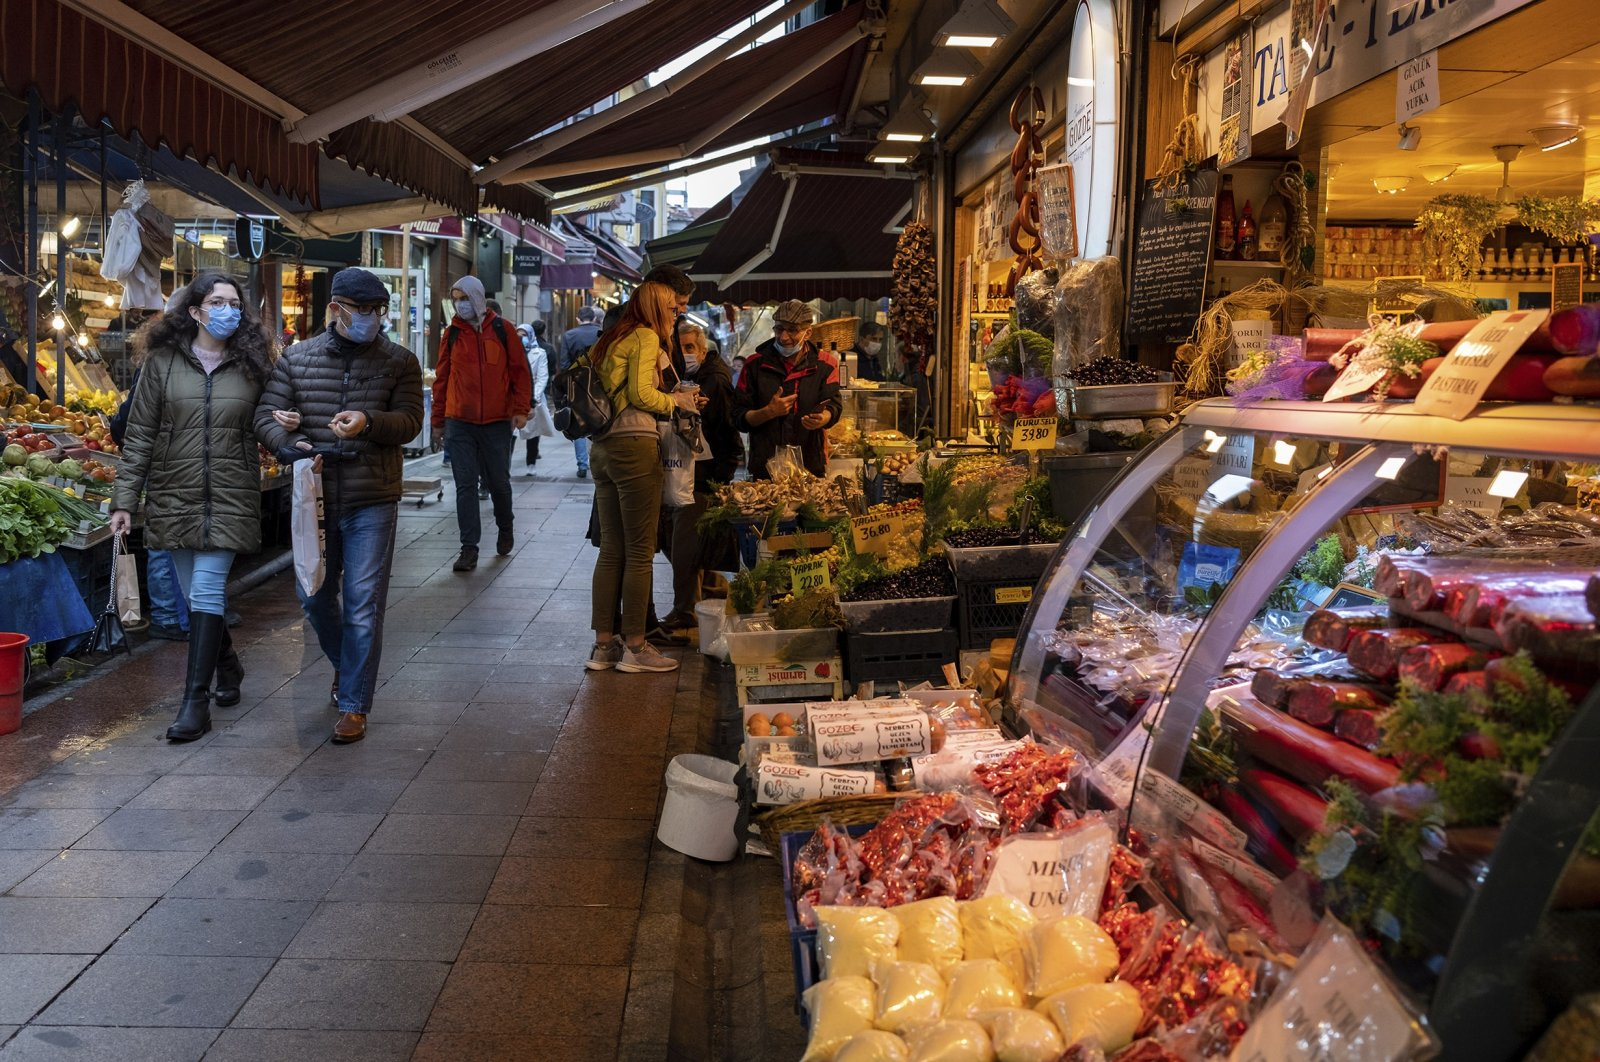 People shop in a local market in the Kadıköy district, Istanbul, Turkey, Nov. 9, 2020. (Photo by Getty Images)